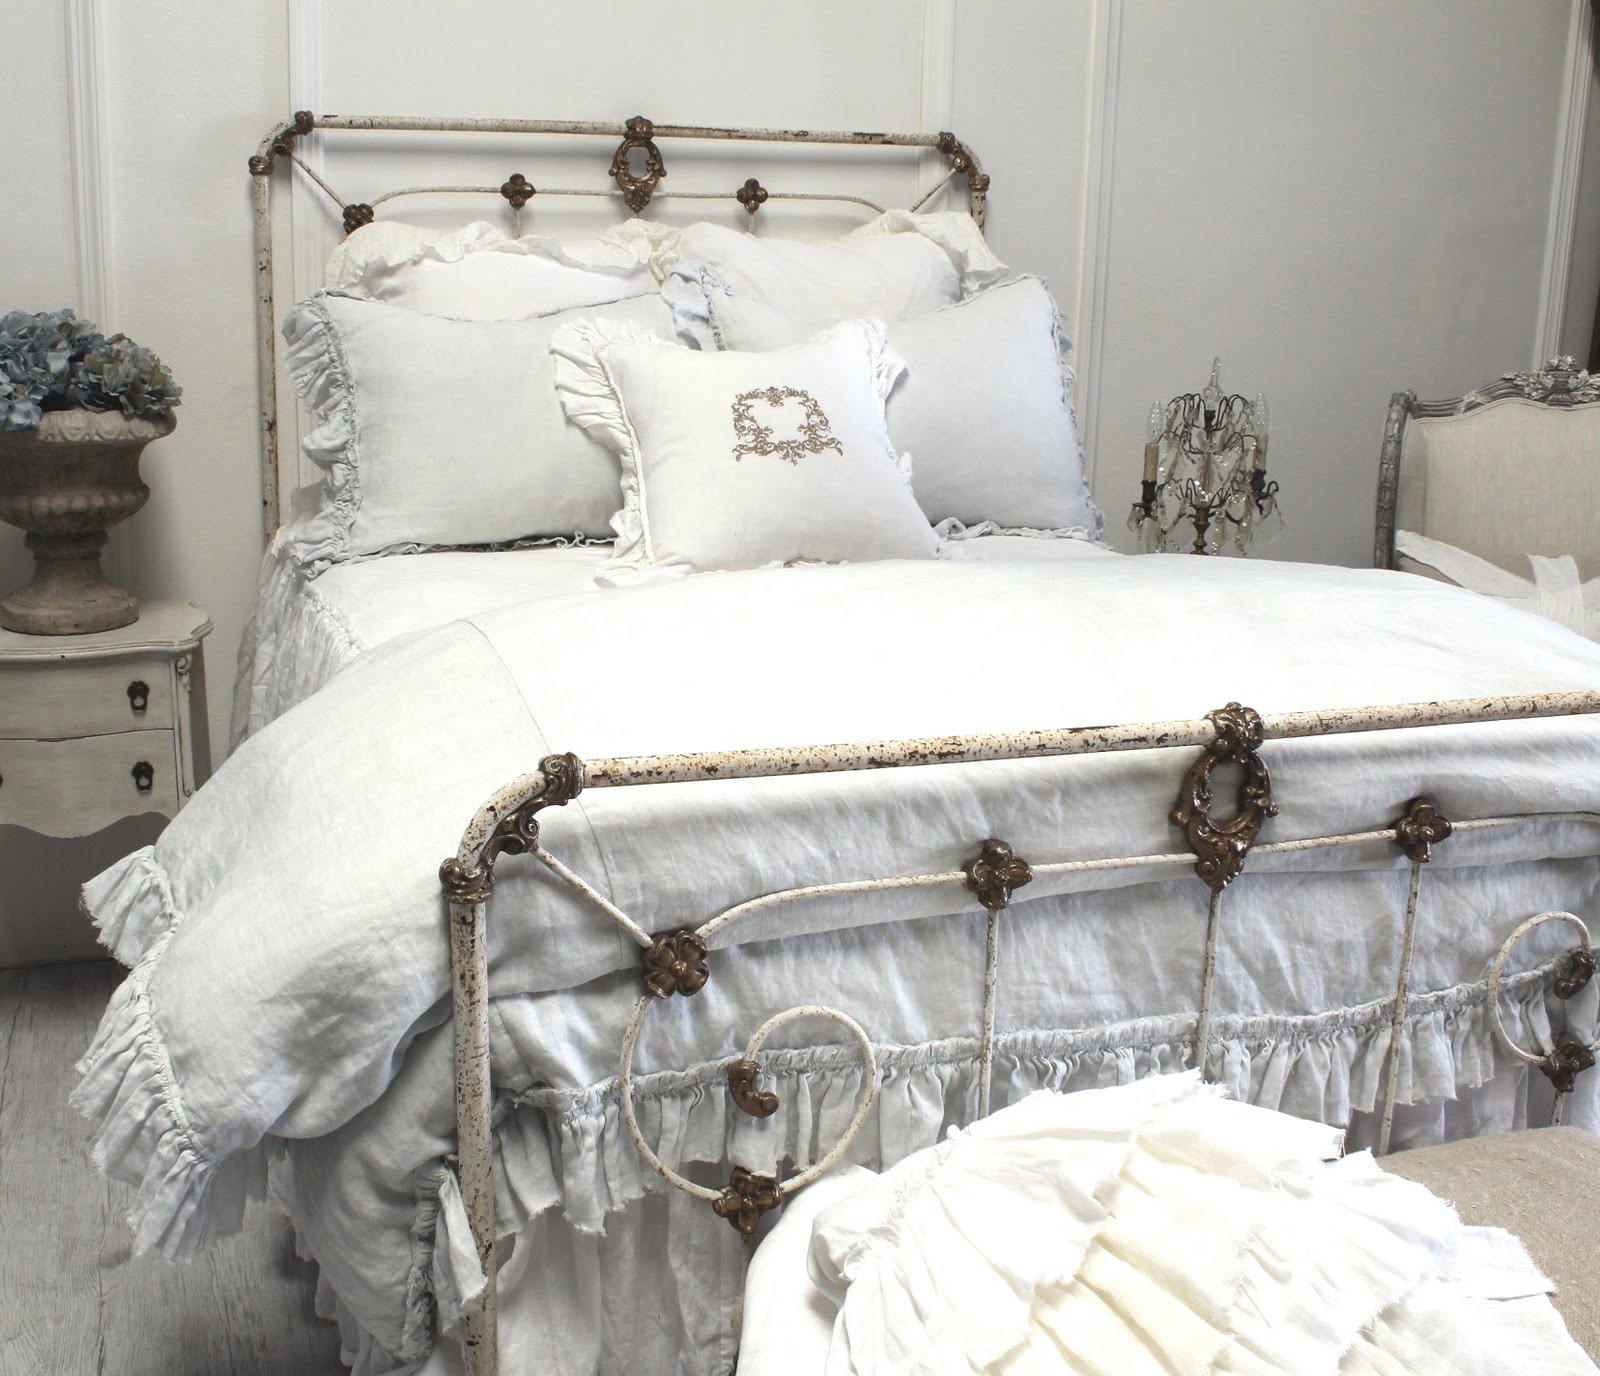 full bloom cottage: linen ruffle bedding soft and organic.